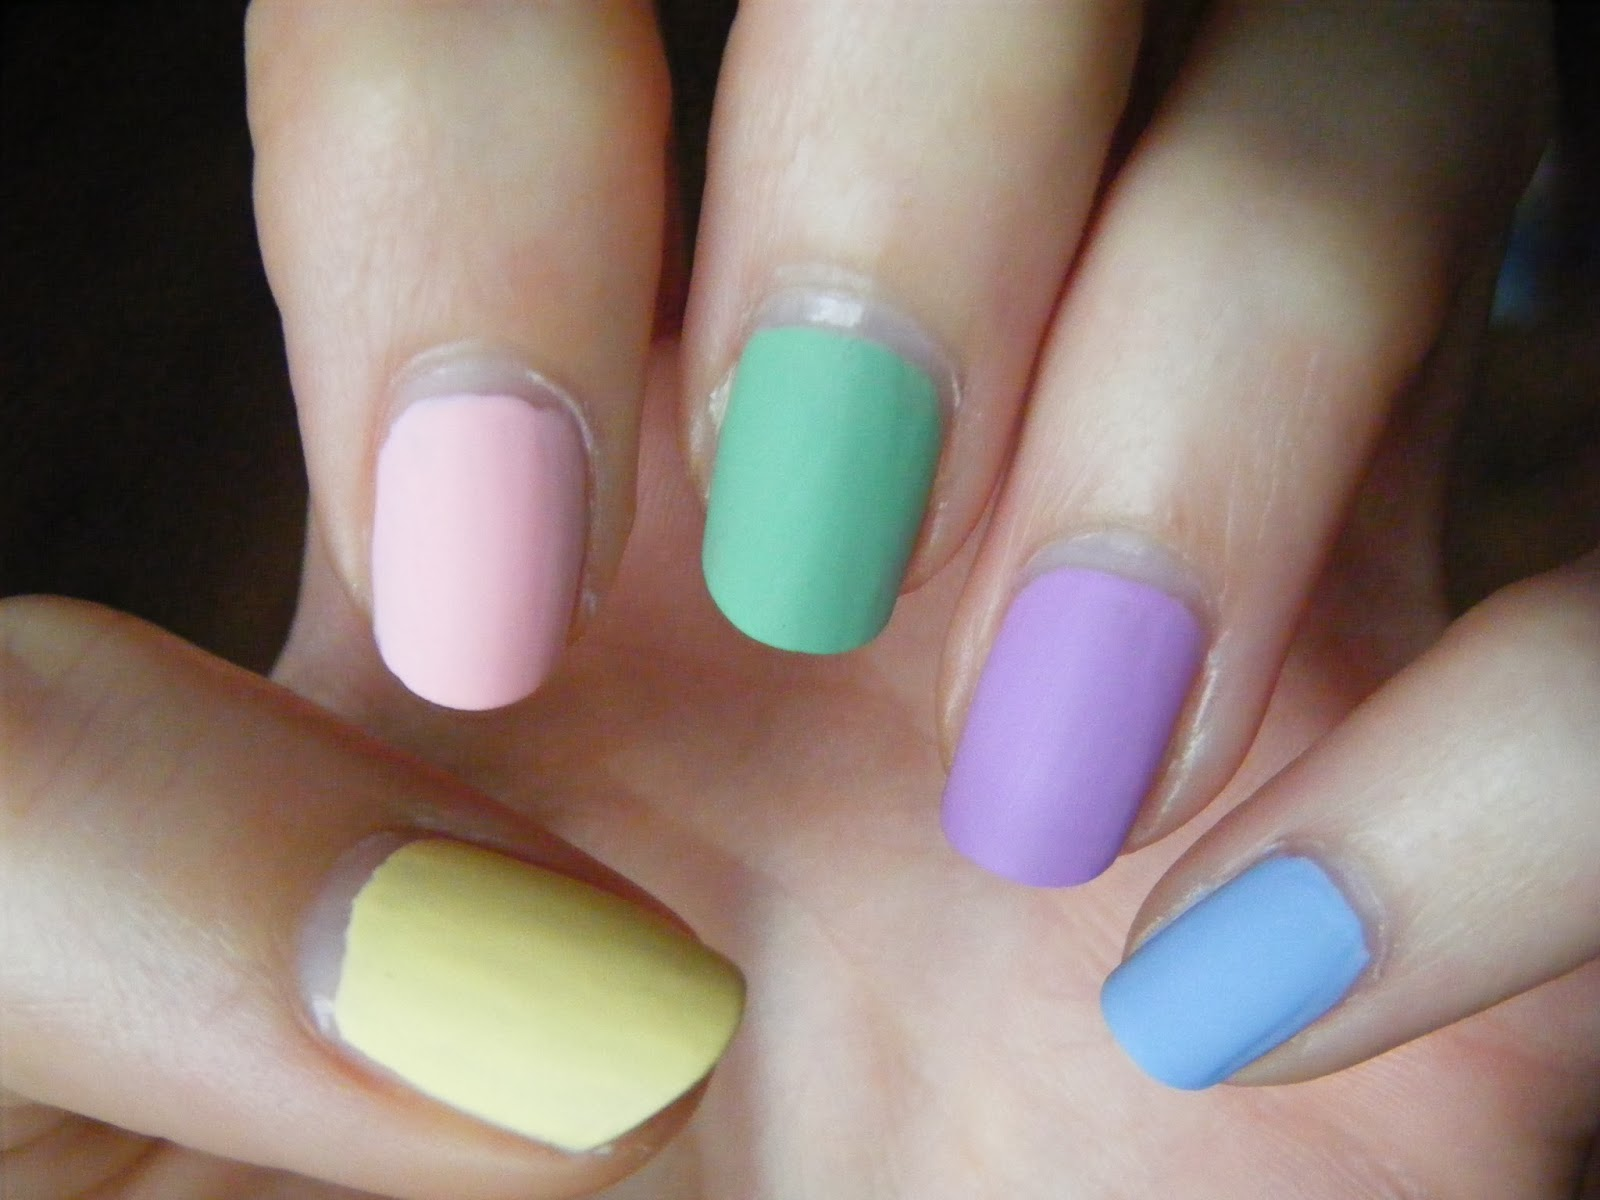 GOT skittle Model own pastel nails